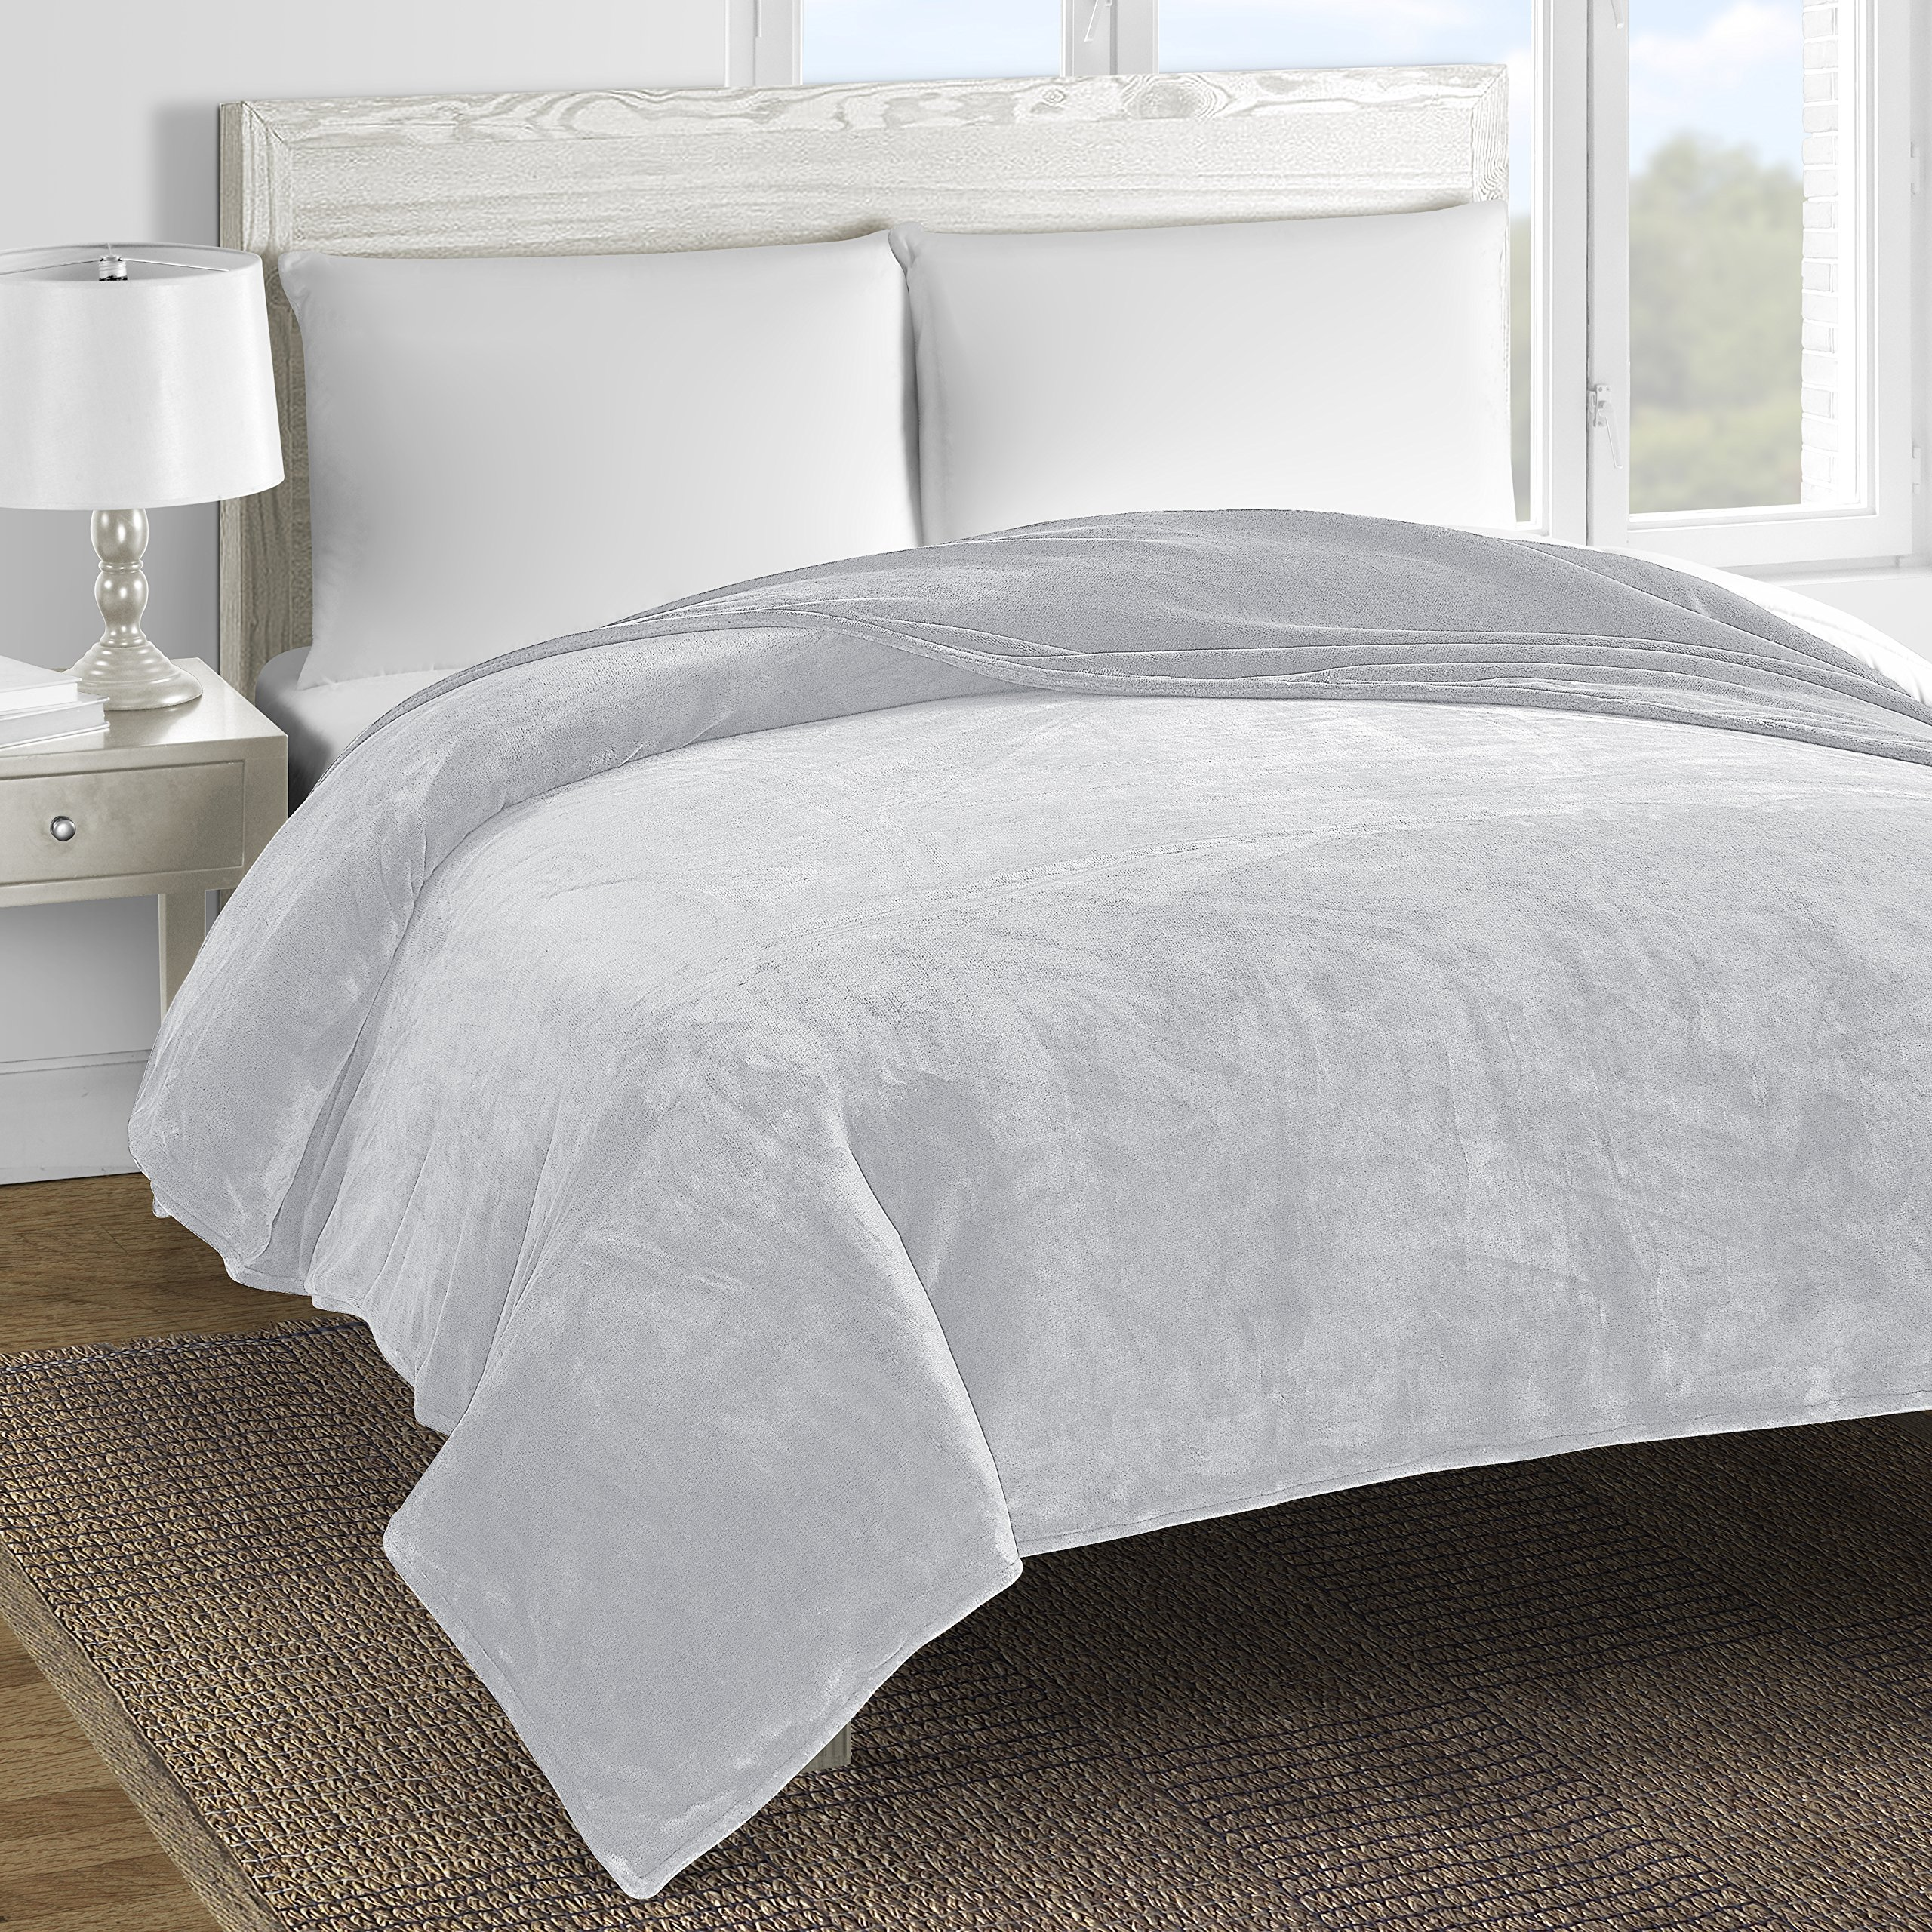 Comfy Bedding Double-Layer Soft and Cozy Fleece Bed Blanket (King, Light Grey)